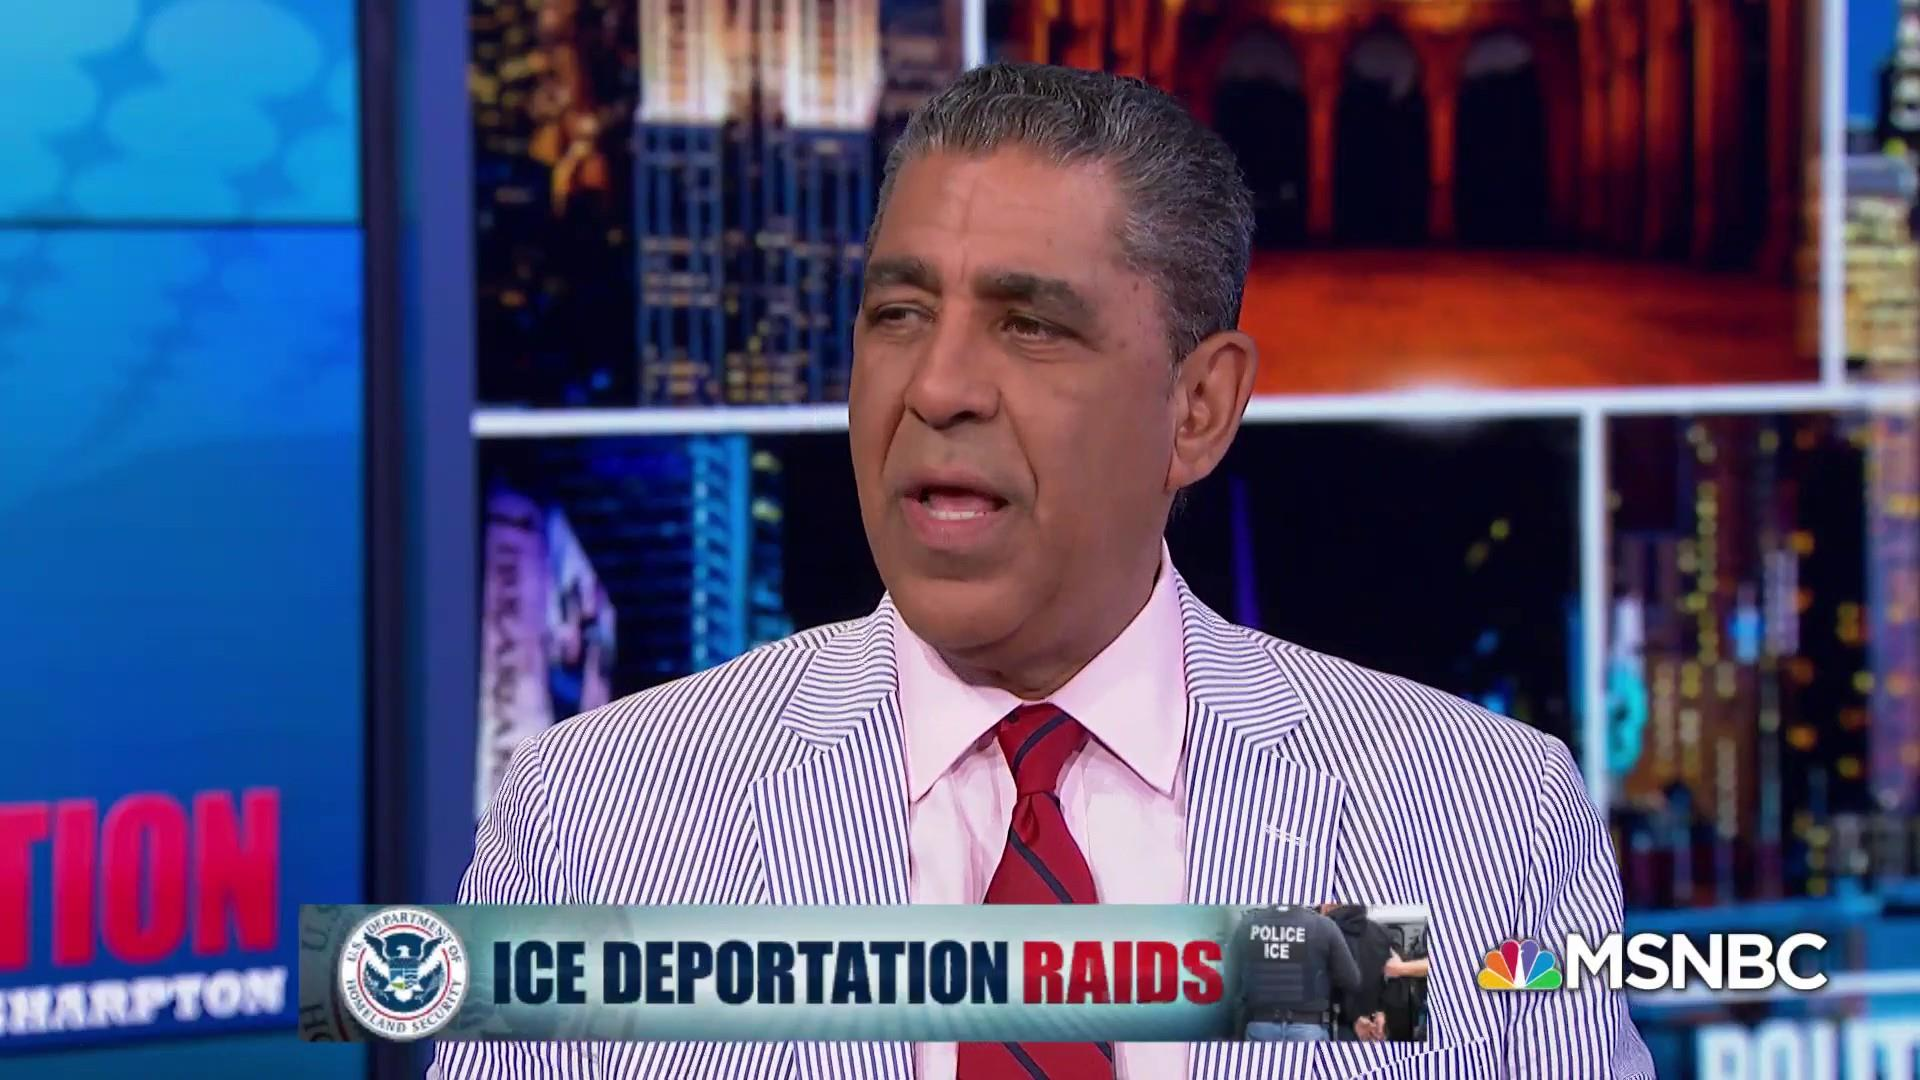 Rep. Adriano Espaillat on ICE Raids: 'We should be Ashamed'